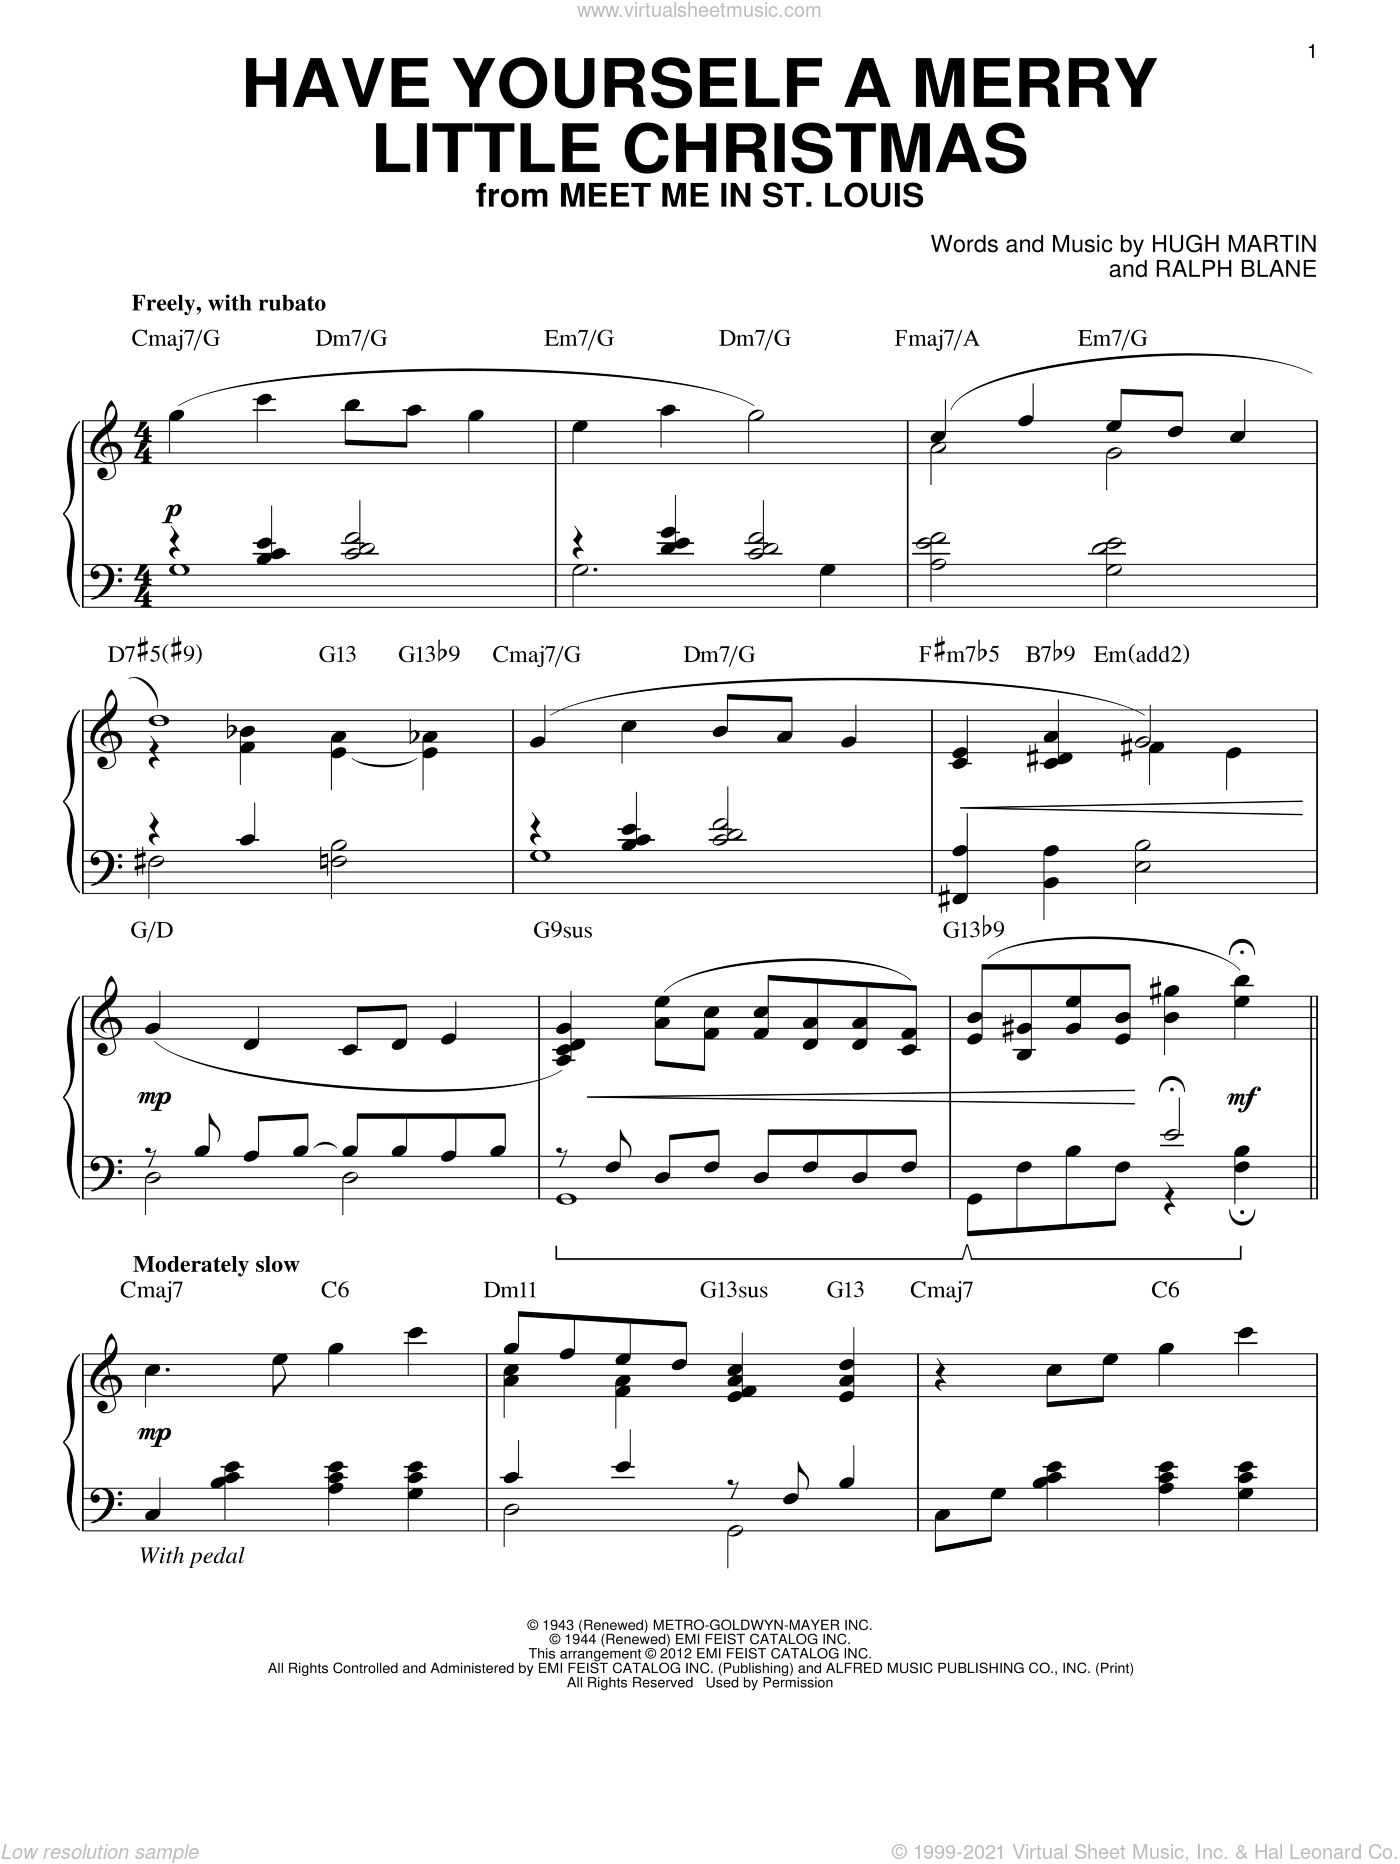 Blane Have Yourself A Merry Little Christmas Jazz Version Arr Brent Edstrom Sheet Music For Piano Solo